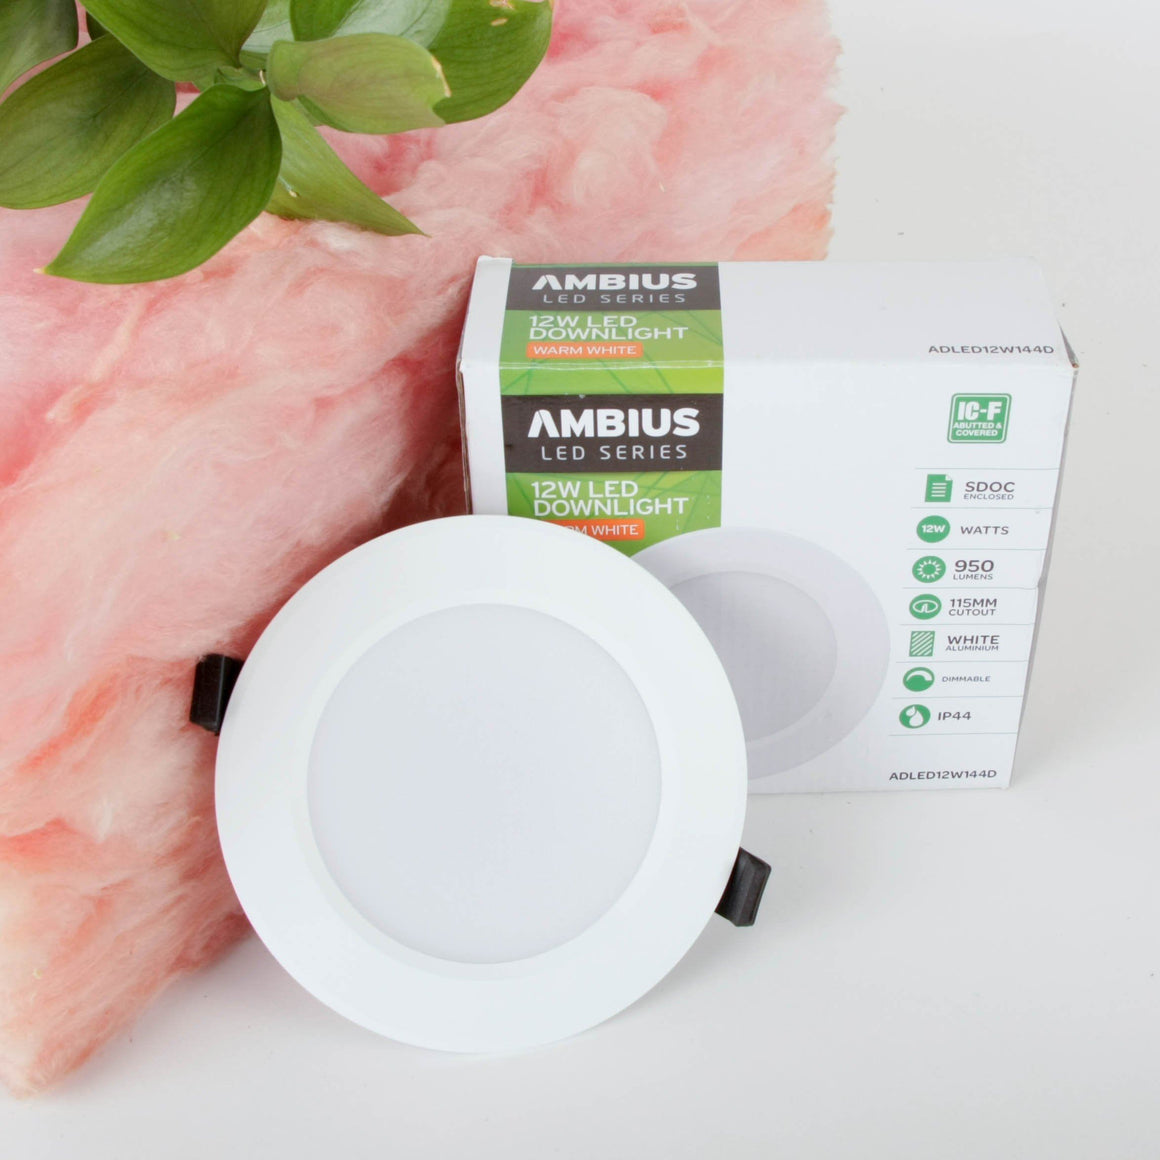 LED Dimmable Downlight - Ambius